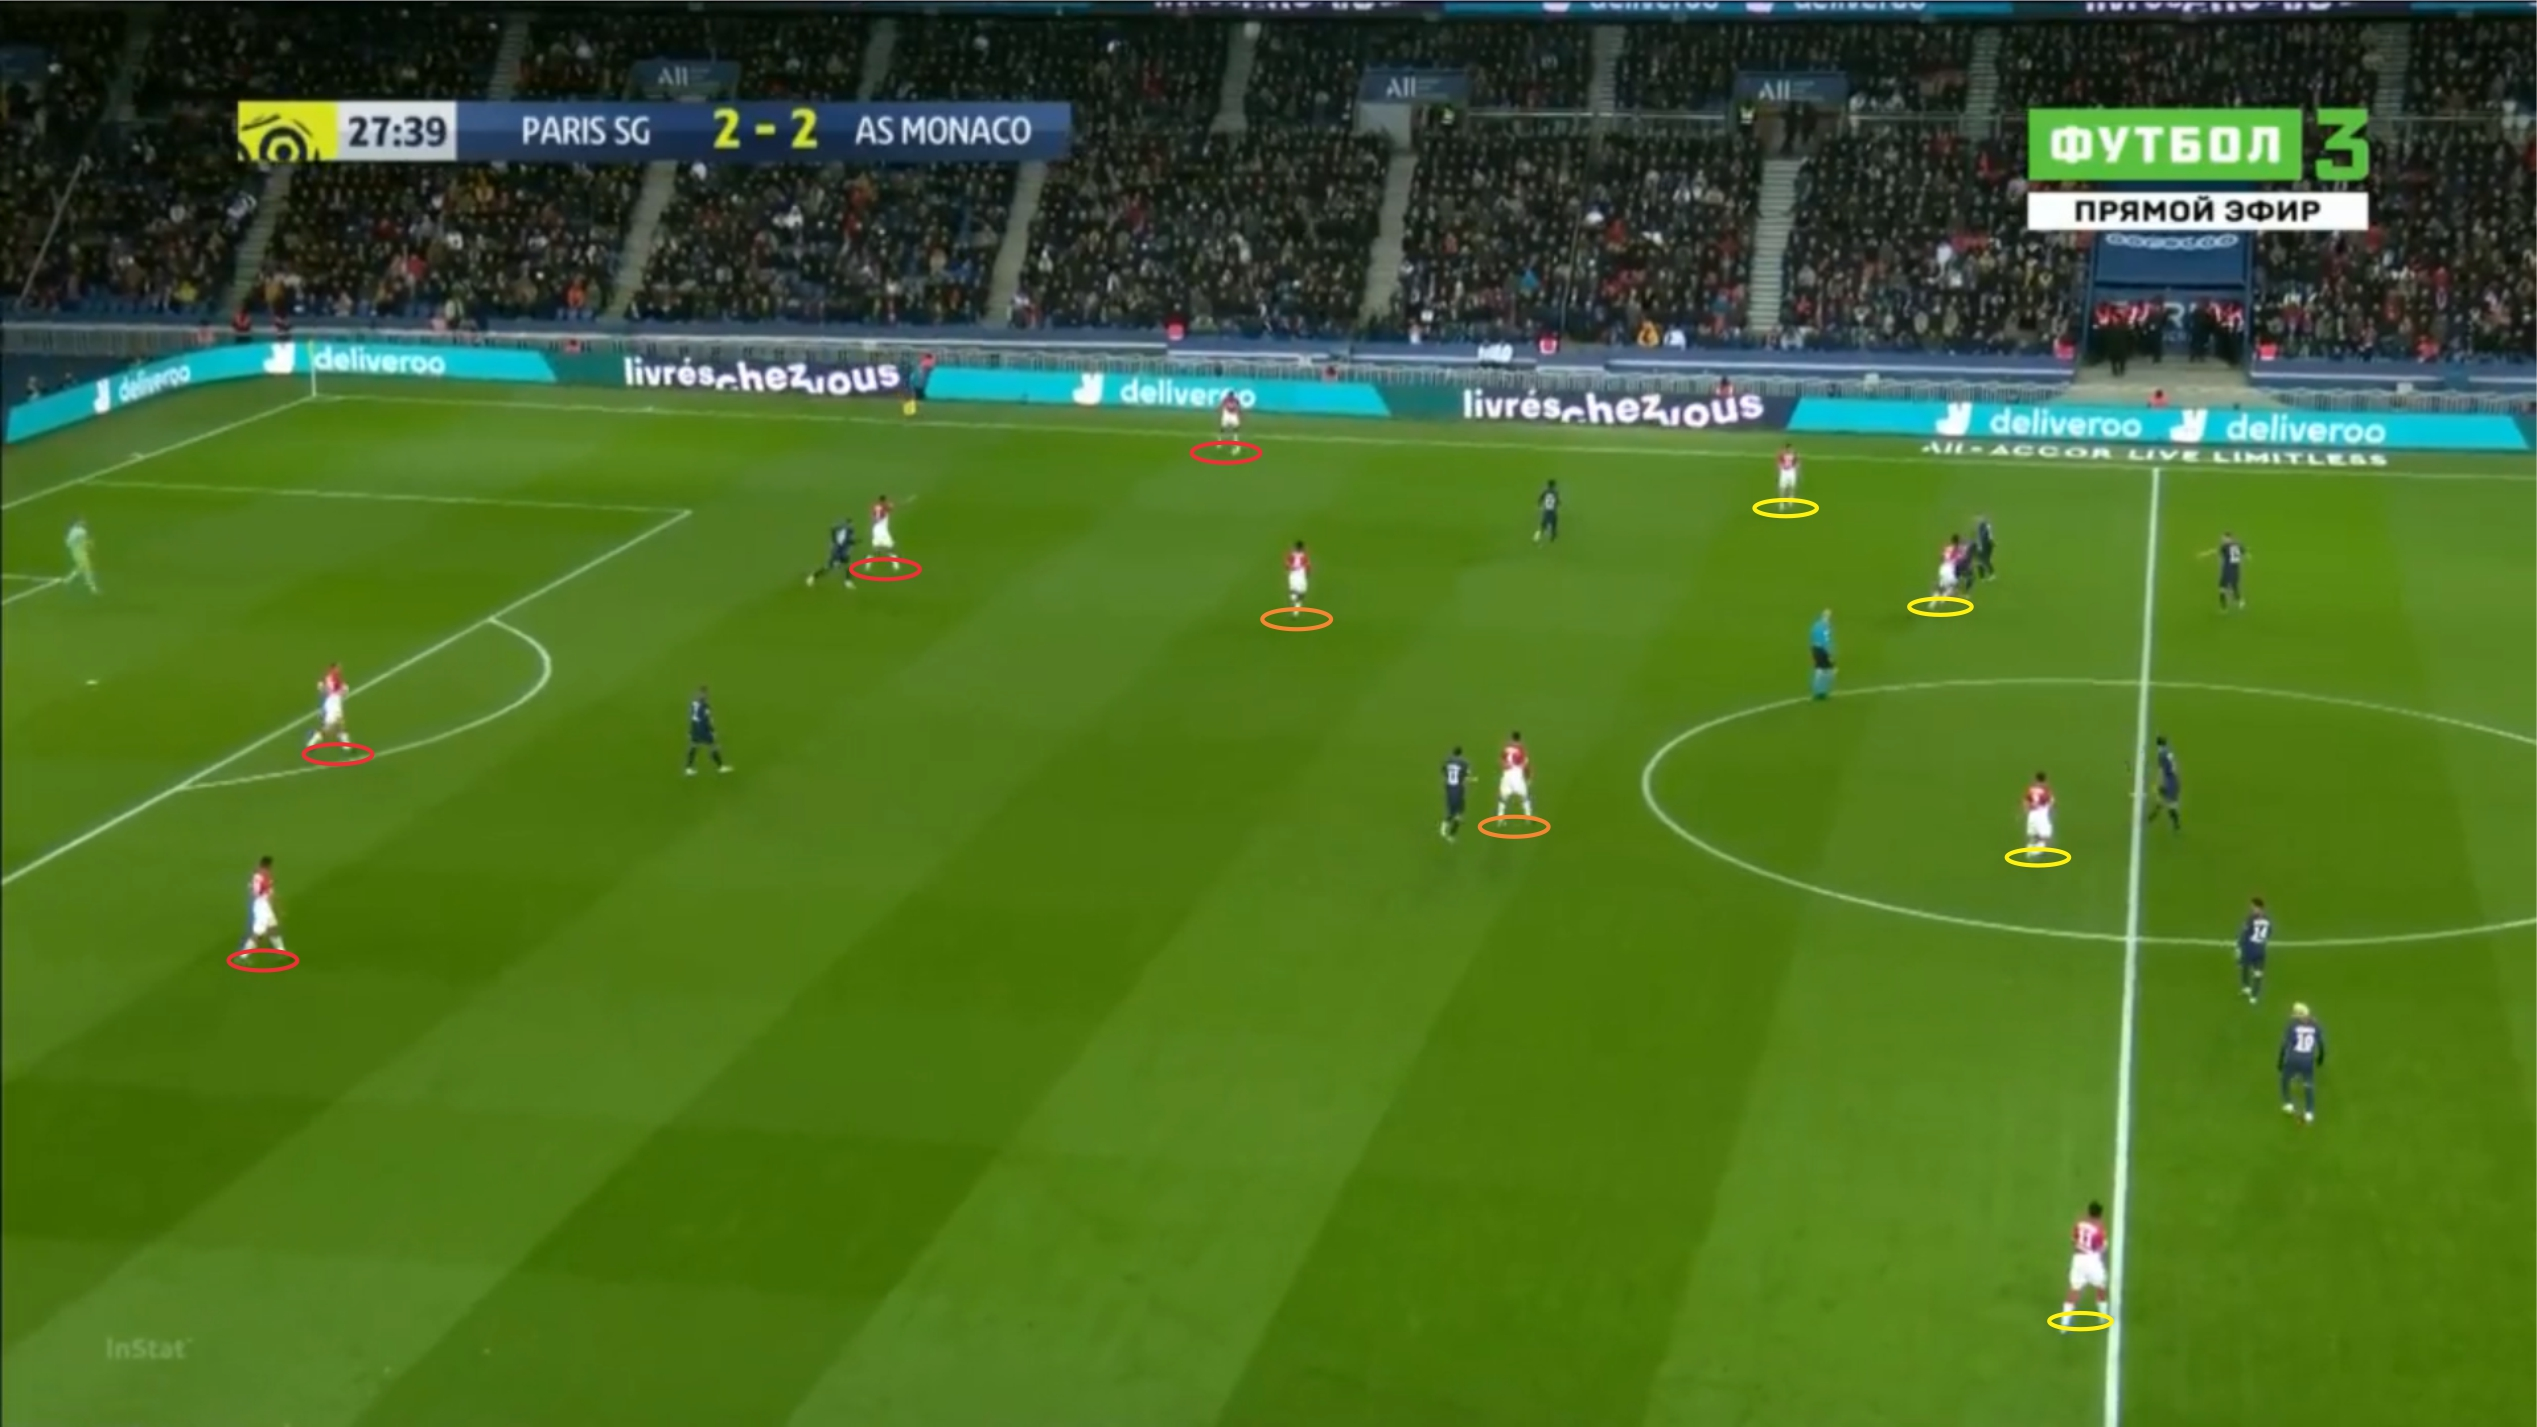 Ligue 1 2019/20: Paris Saint-Germain vs Monaco - tactical analysis tactics